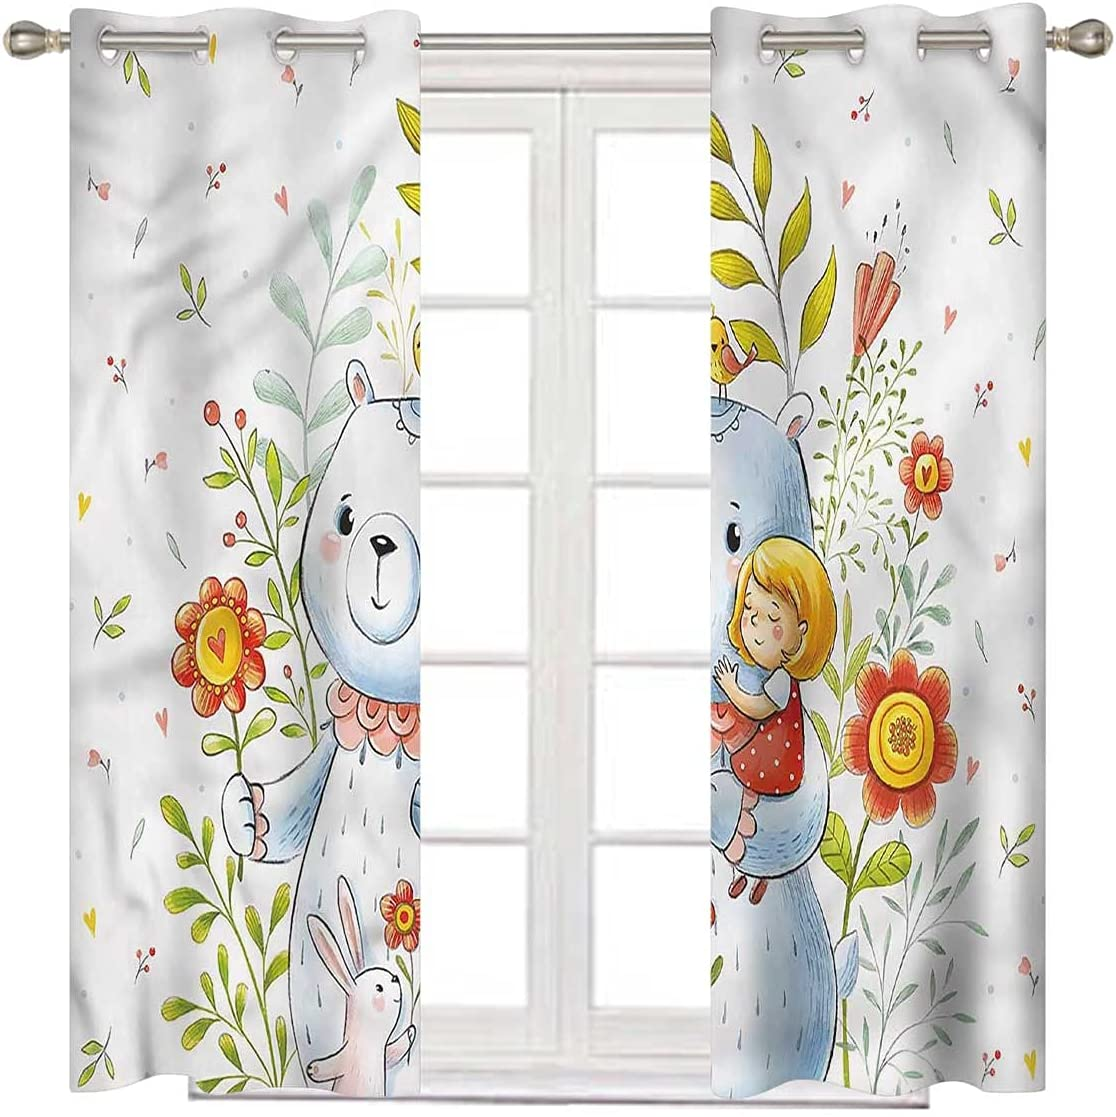 Super-cheap Cartoon Kids Blackout Curtains 108 Inventory cleanup selling sale Inch in Bear Teddy Long G Toy